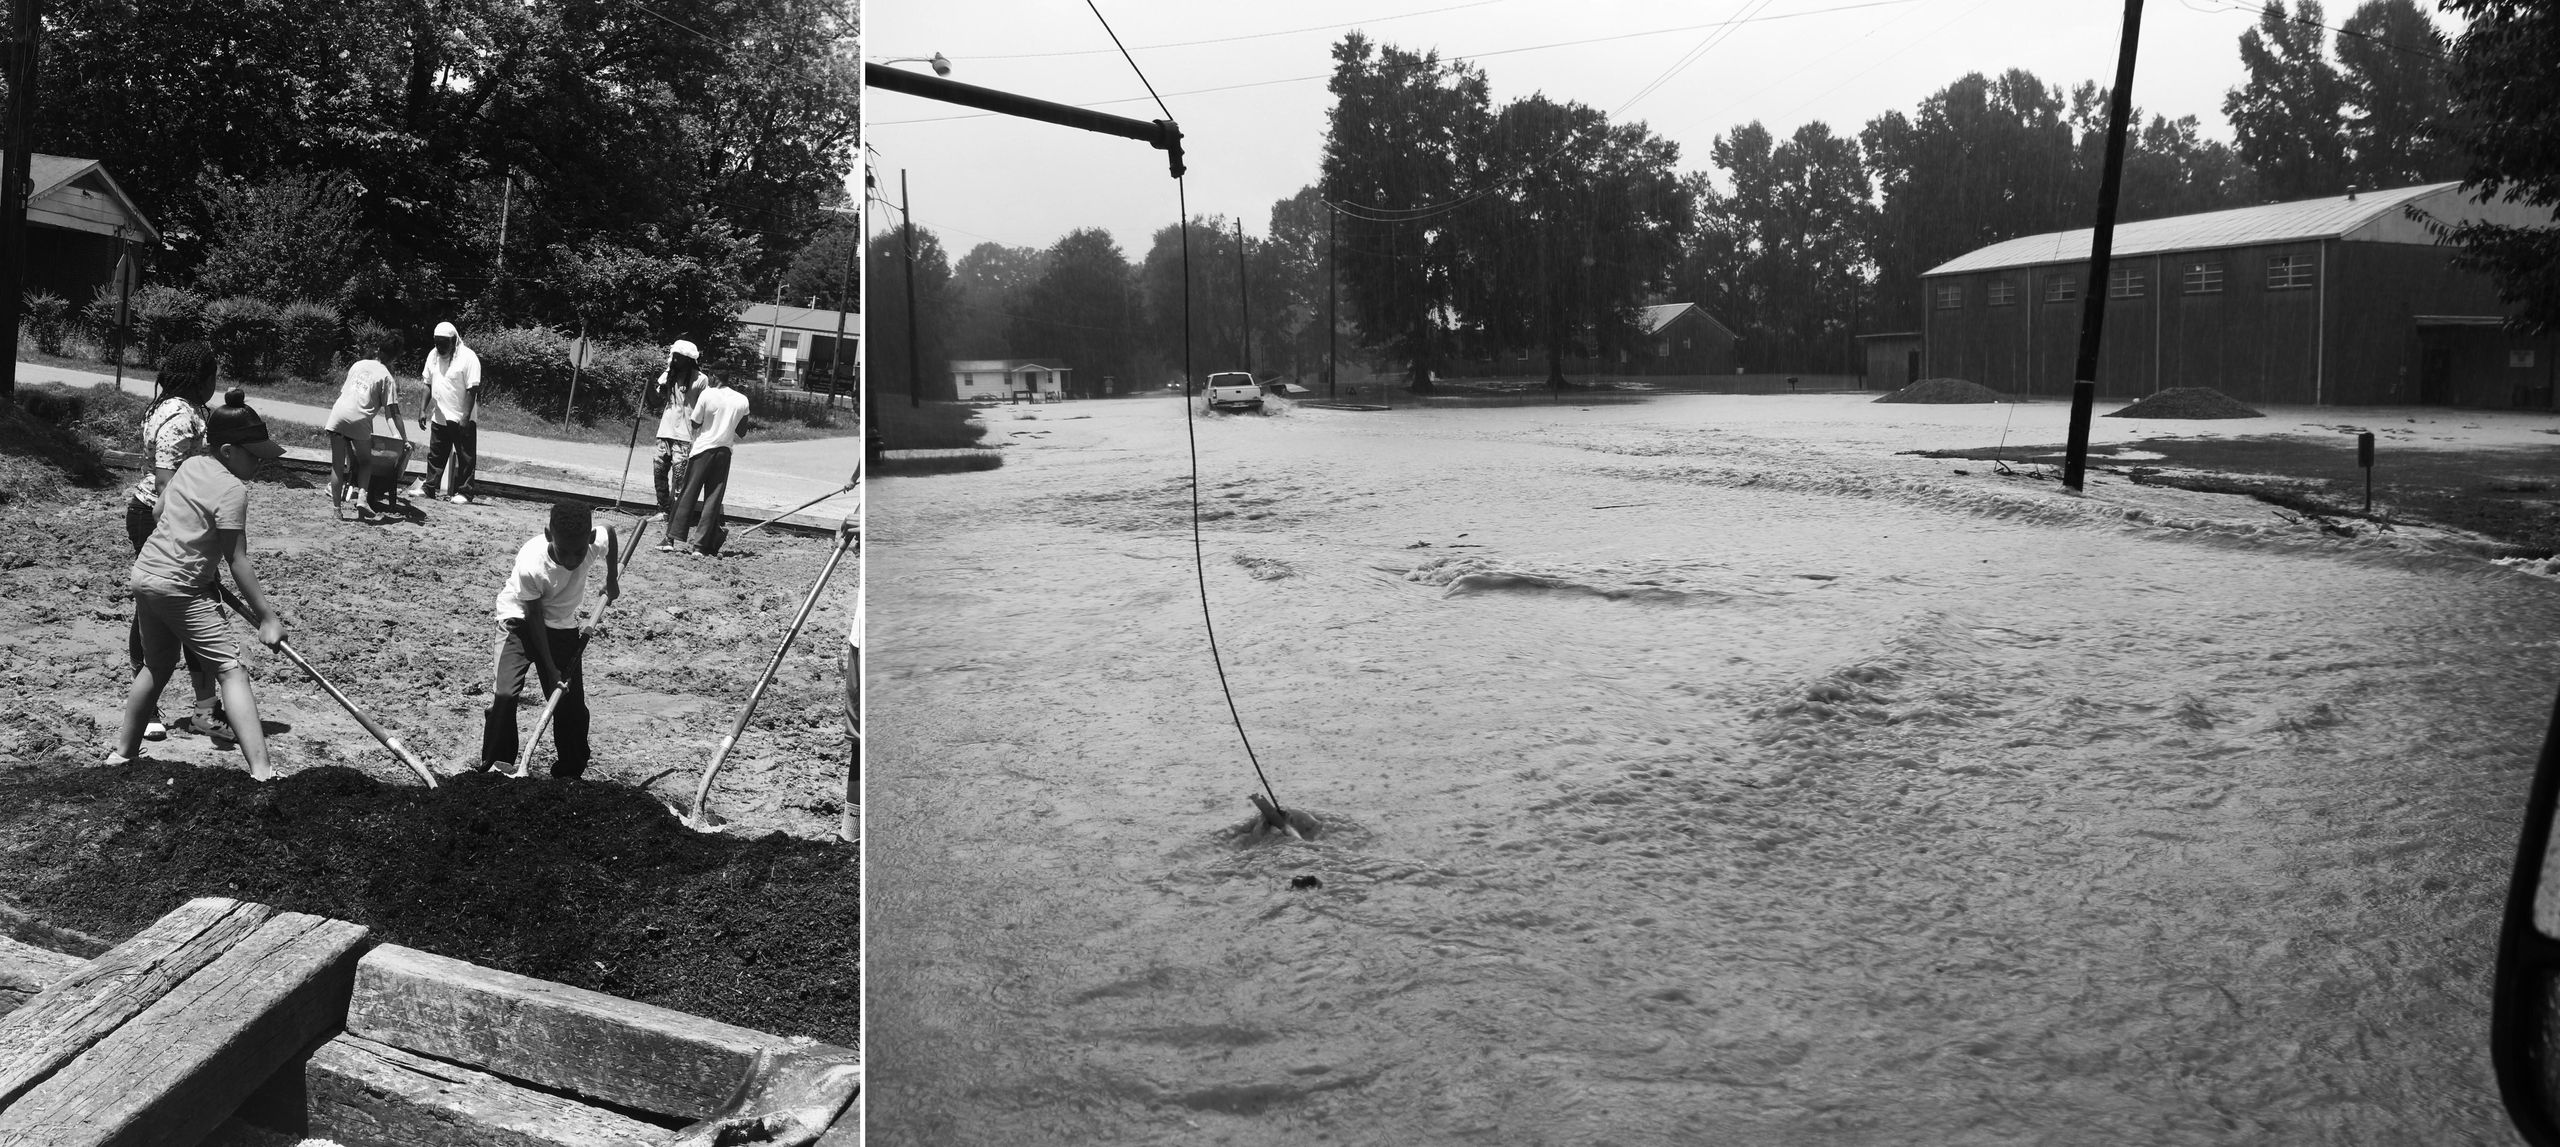 Right: A street in the town looked like after a storm before it had an updated drainage system. Left: Kids in Creek Rangers h